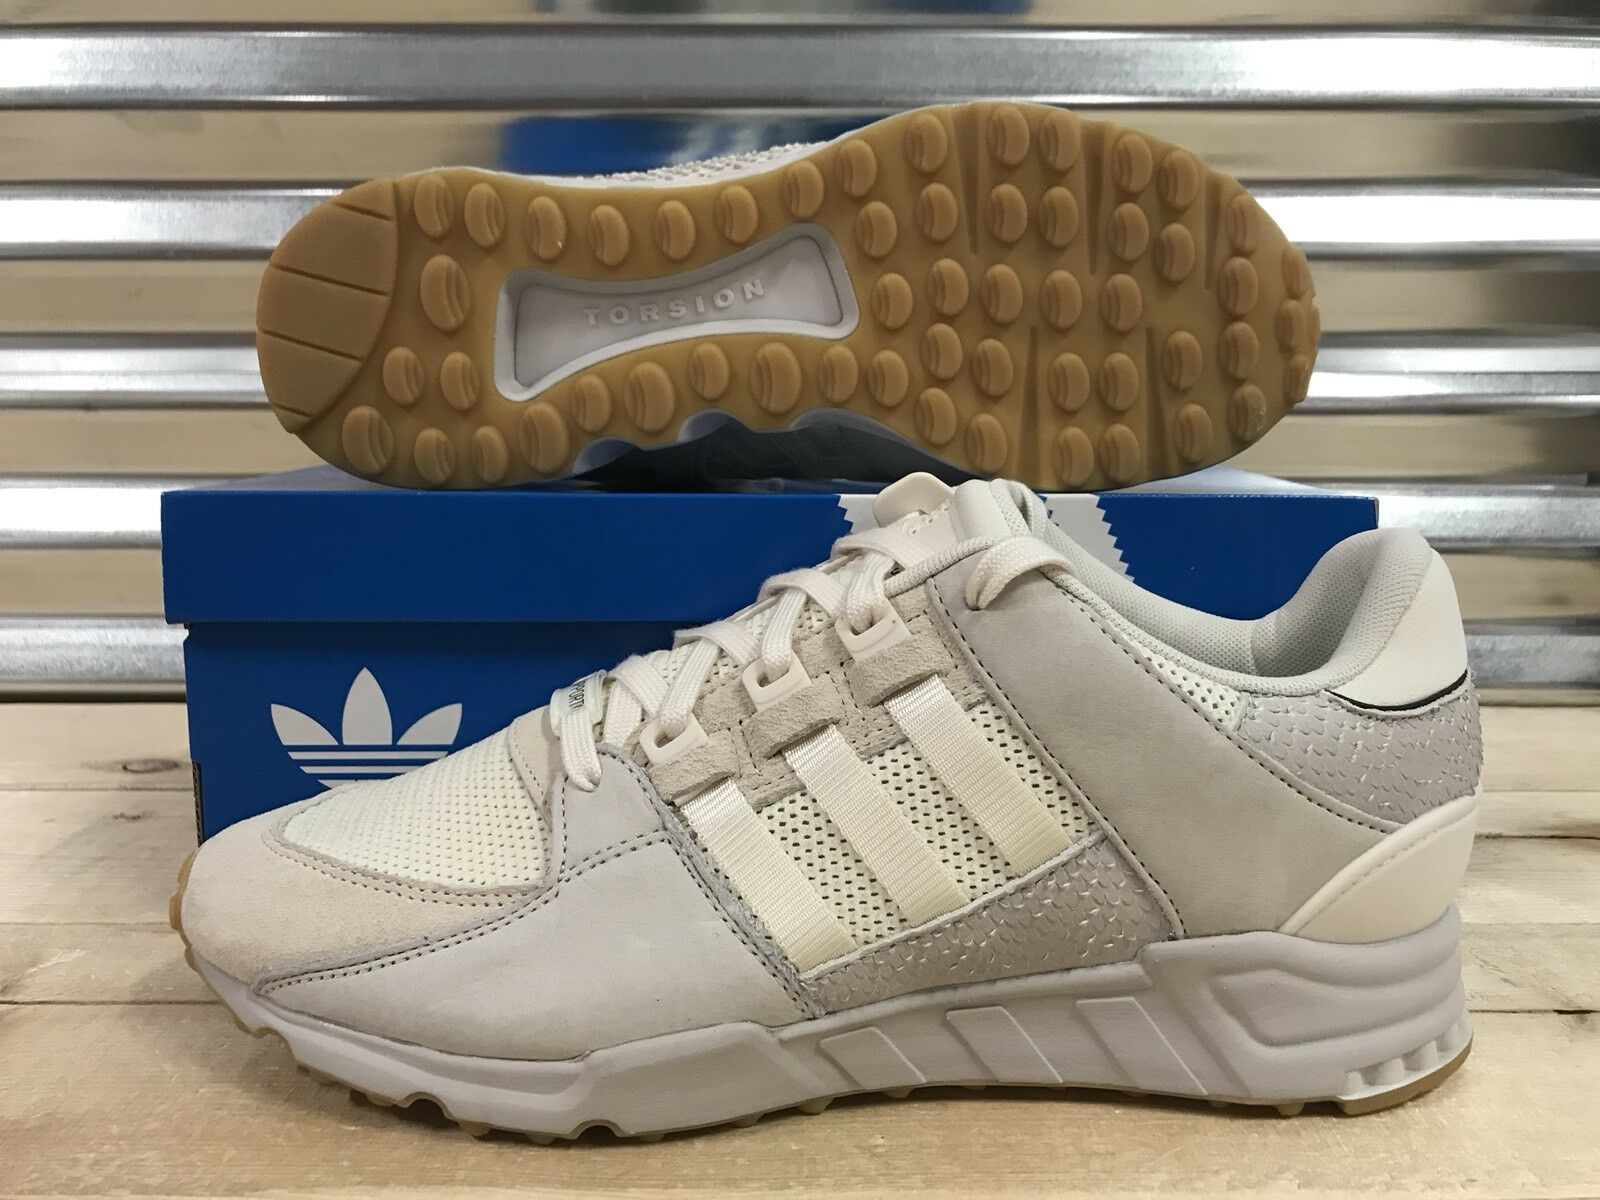 Adidas EQT Support RF Lifestyle Running shoes Tan Beige Gum SZ ( BY9616 )